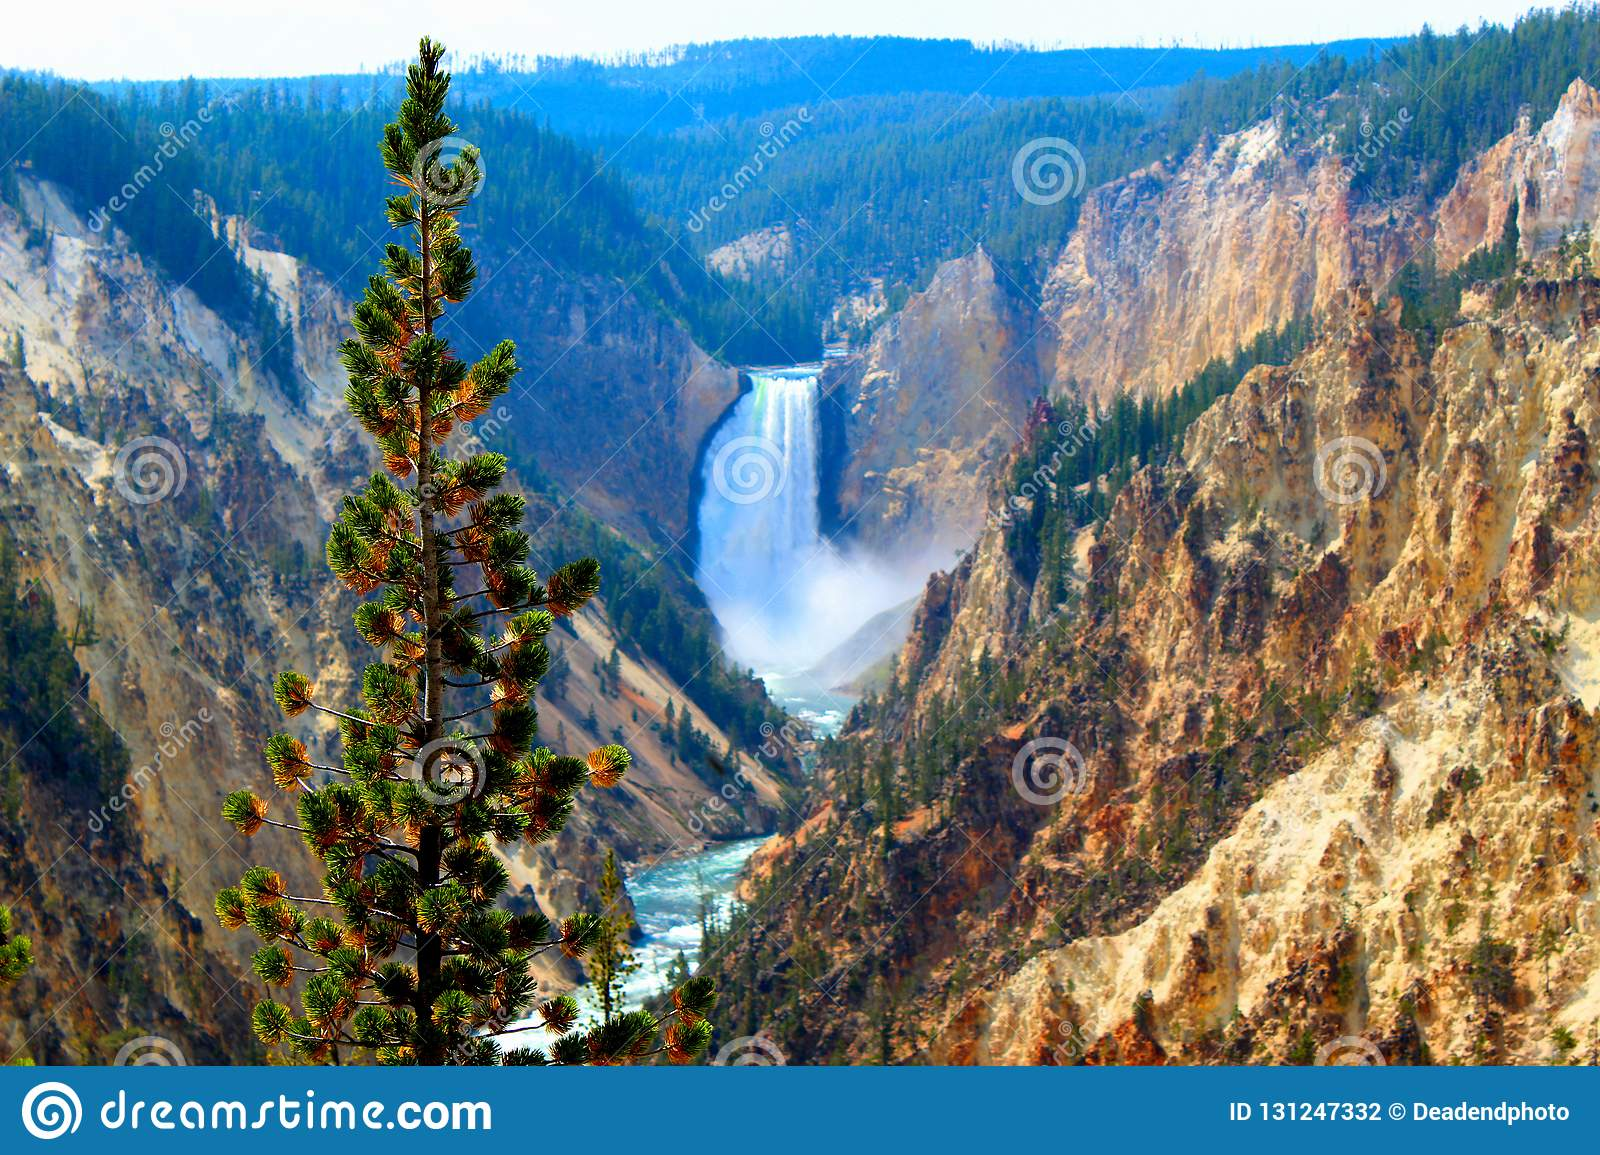 Yellowstone National Park canyon village upper falls of the yellowstone Landscape Mountains and woodlands beautiful cliffs